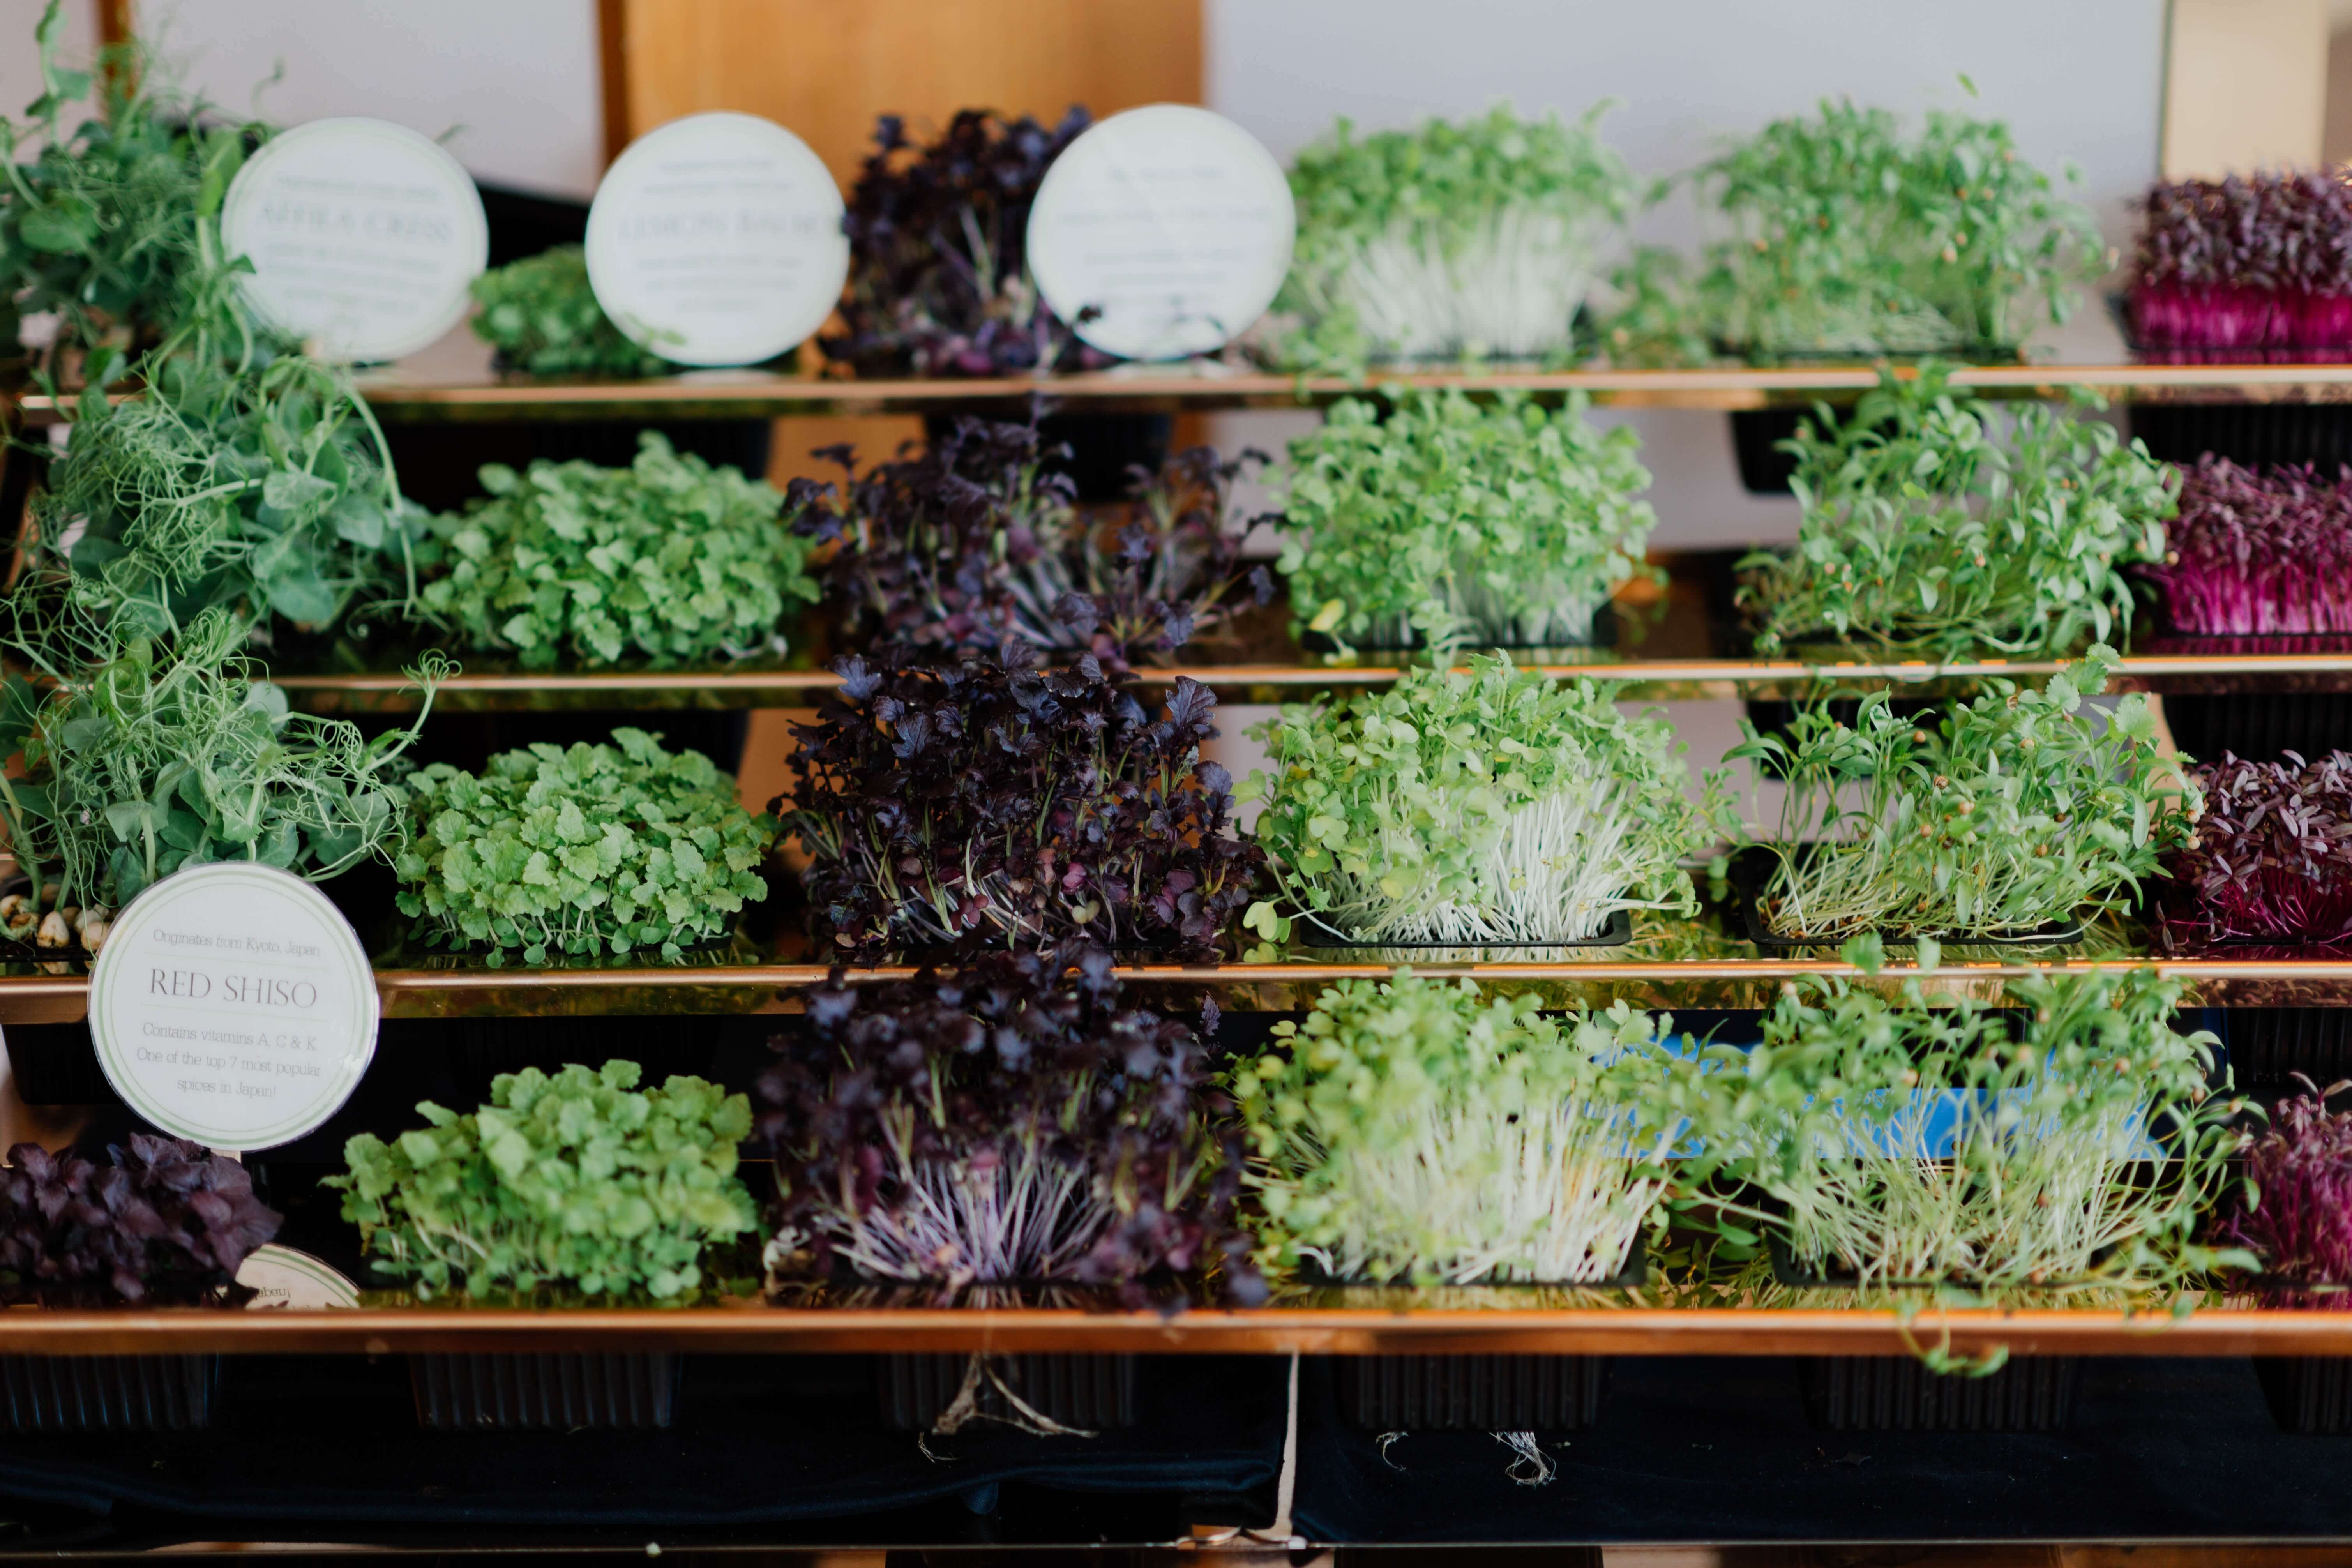 Broccoli Sprouts on a shelf